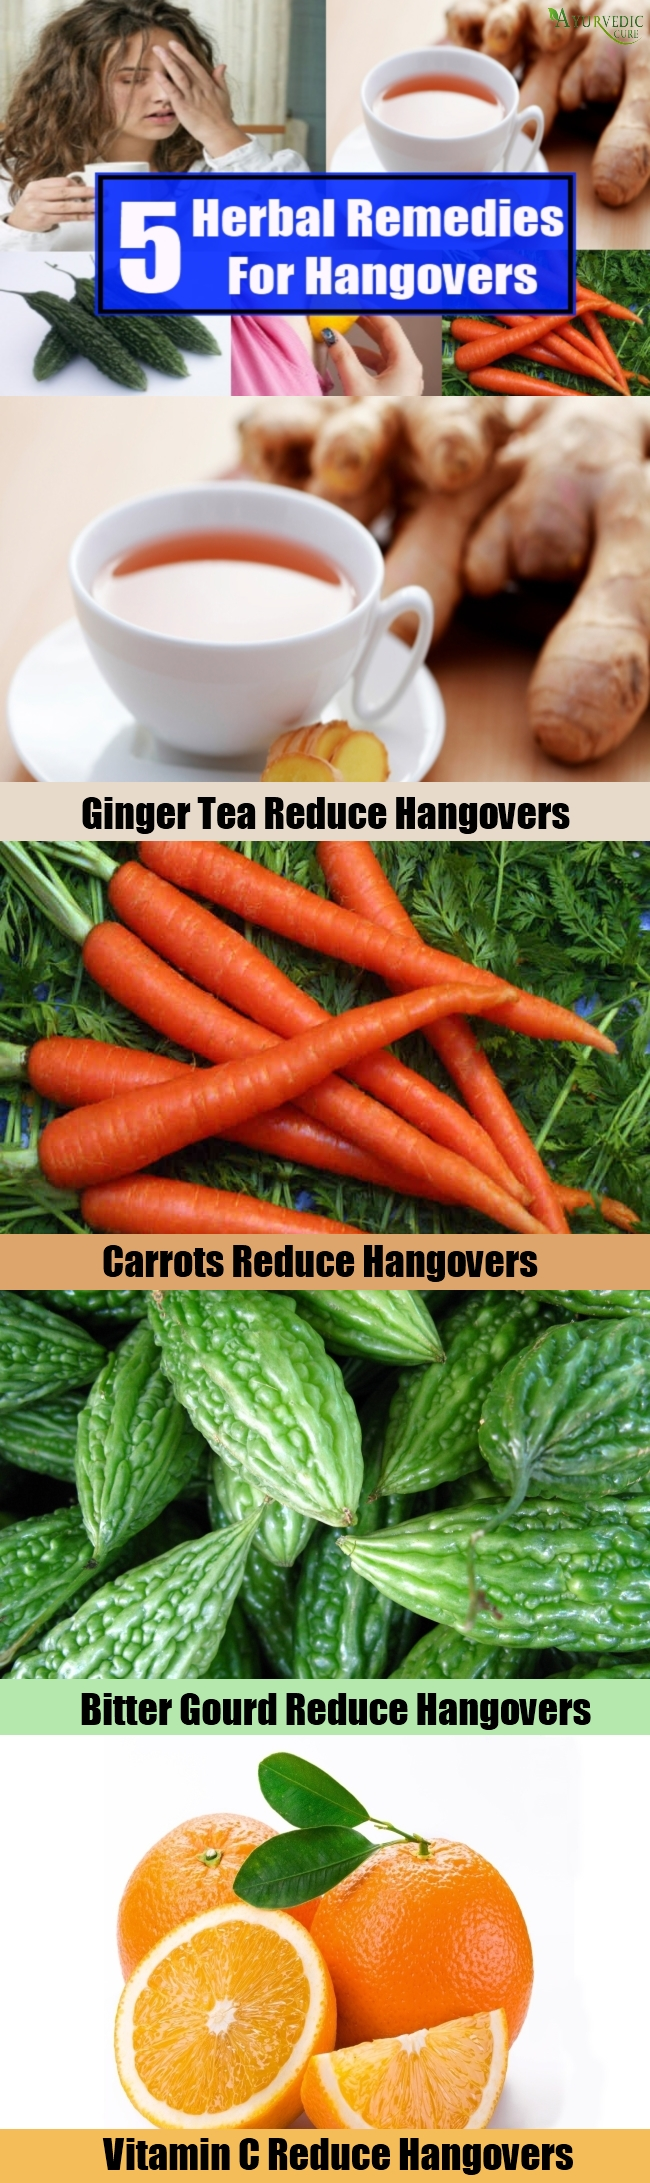 Effective Herbal Remedies For Hangovers